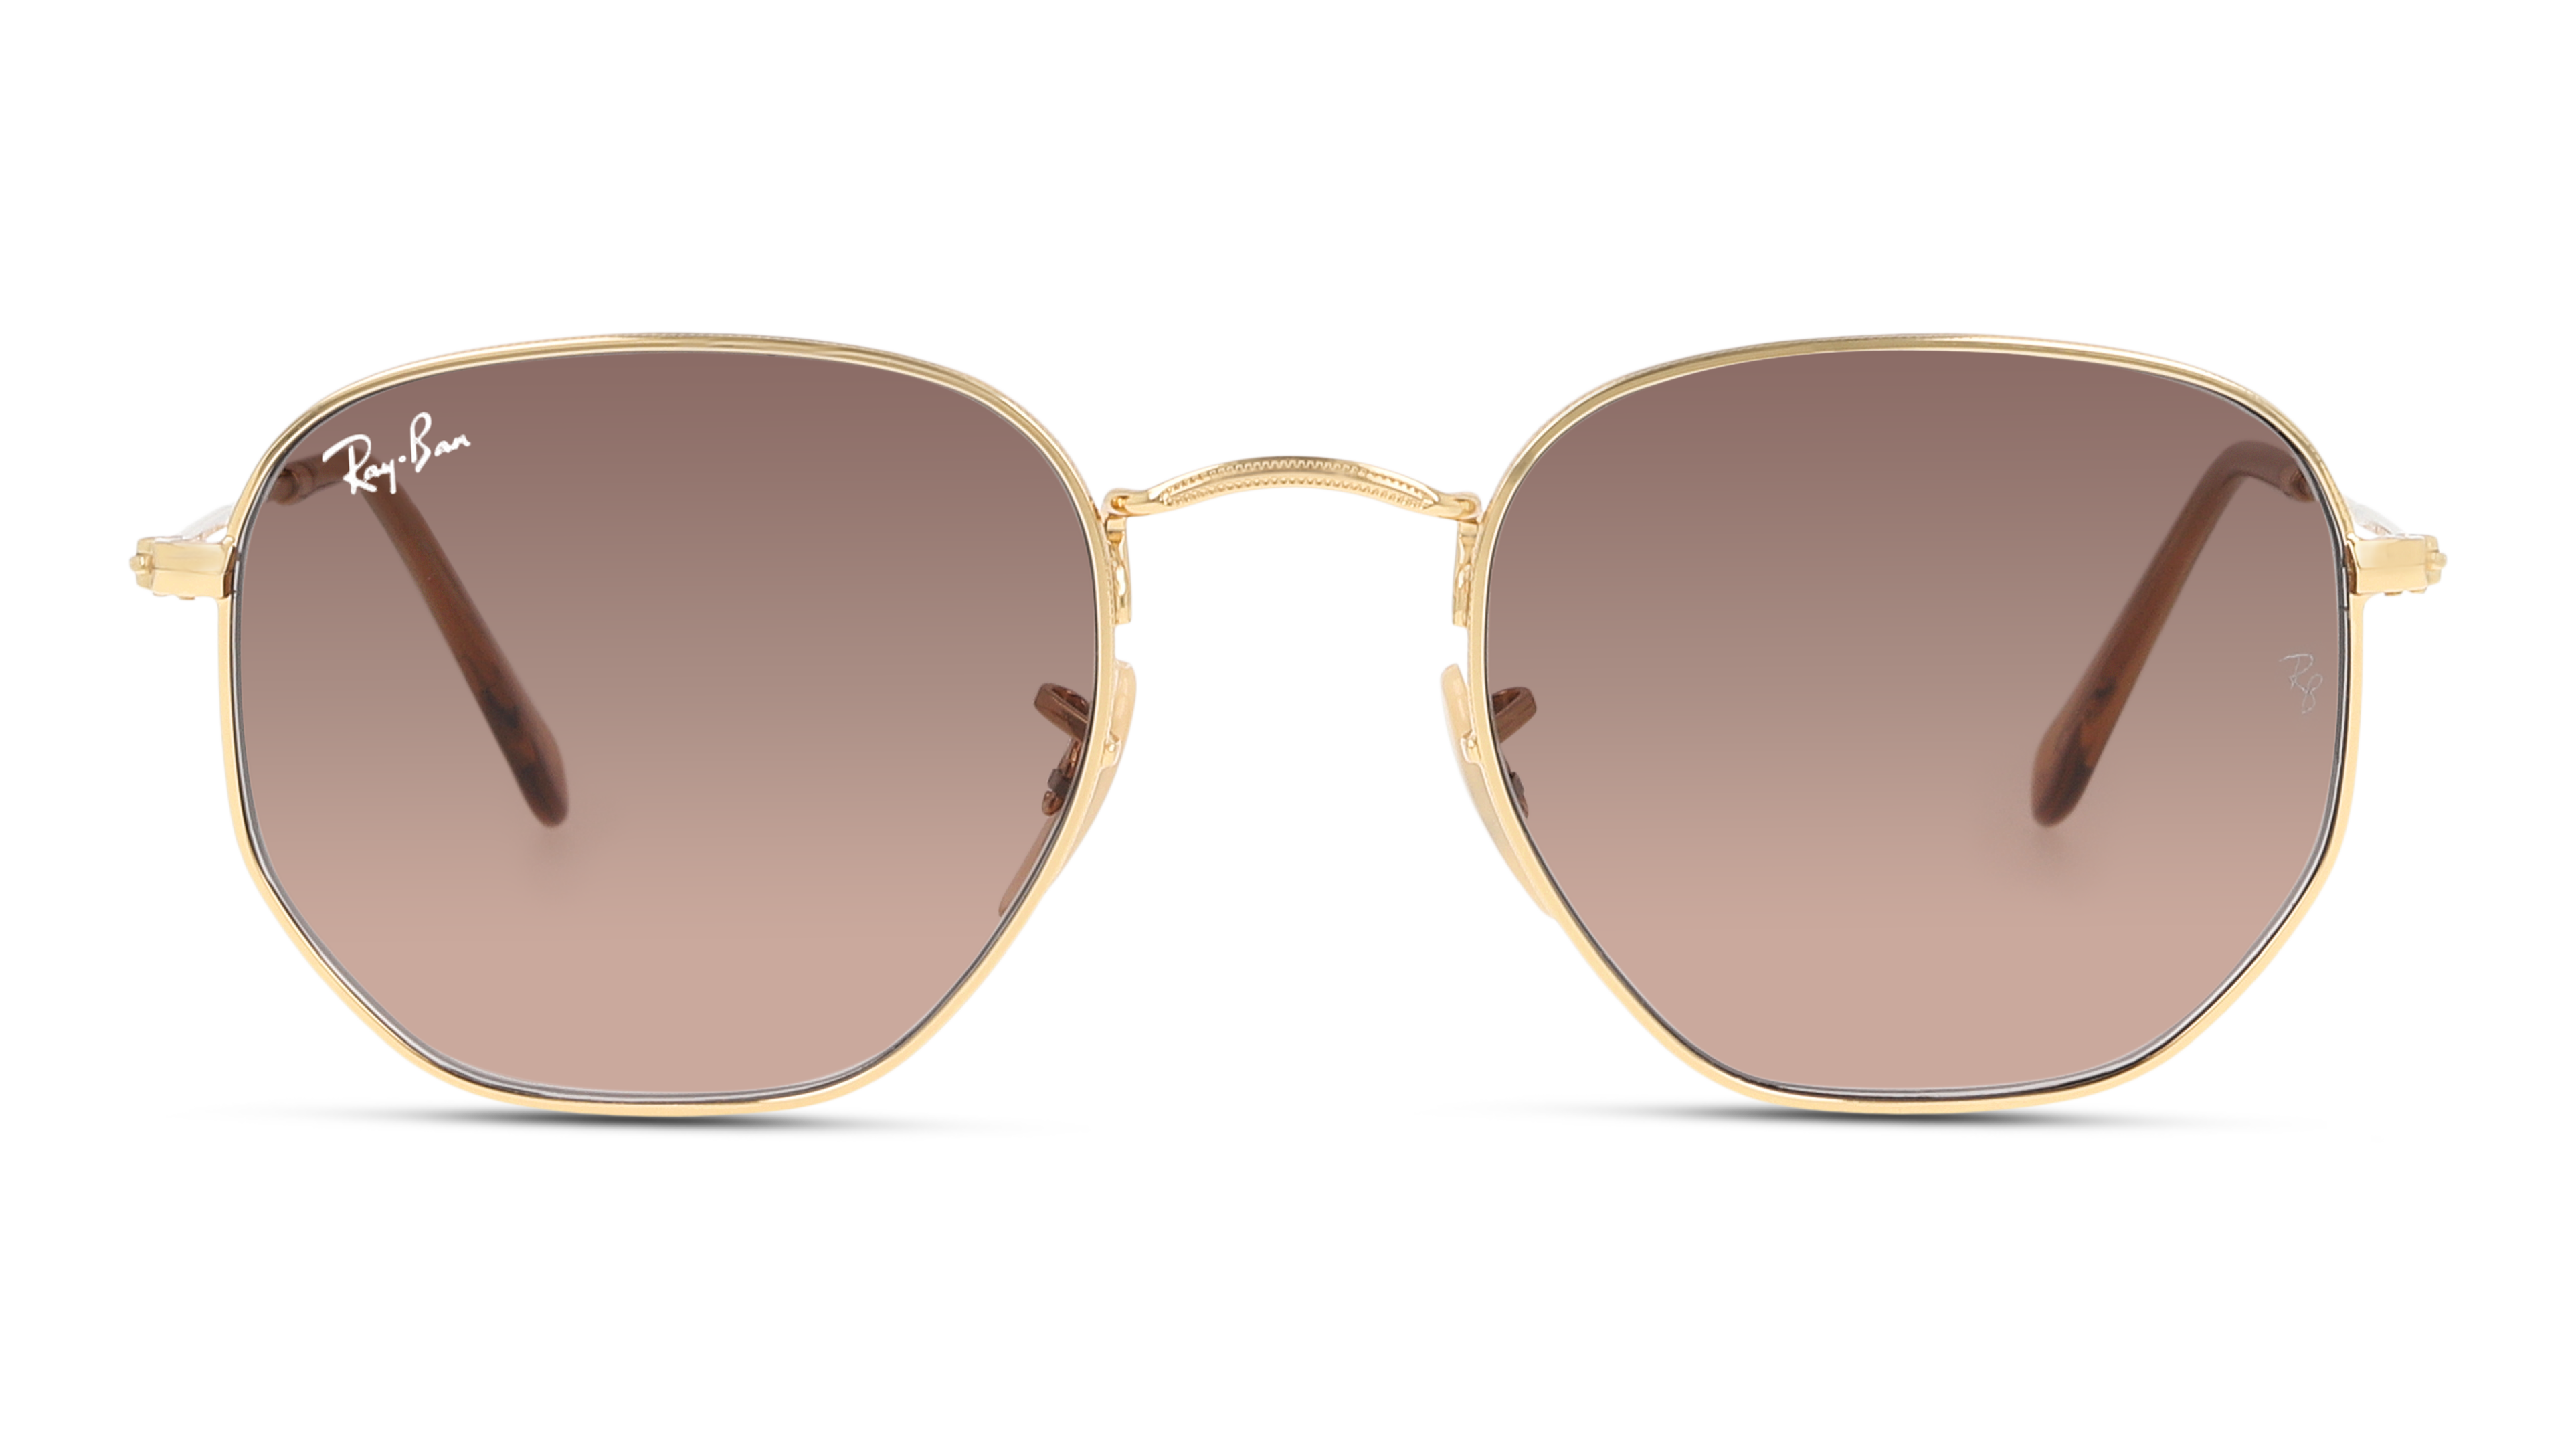 Front Ray-Ban Ray-Ban 0RB3548N 912443 51/21 Goud/Bruin